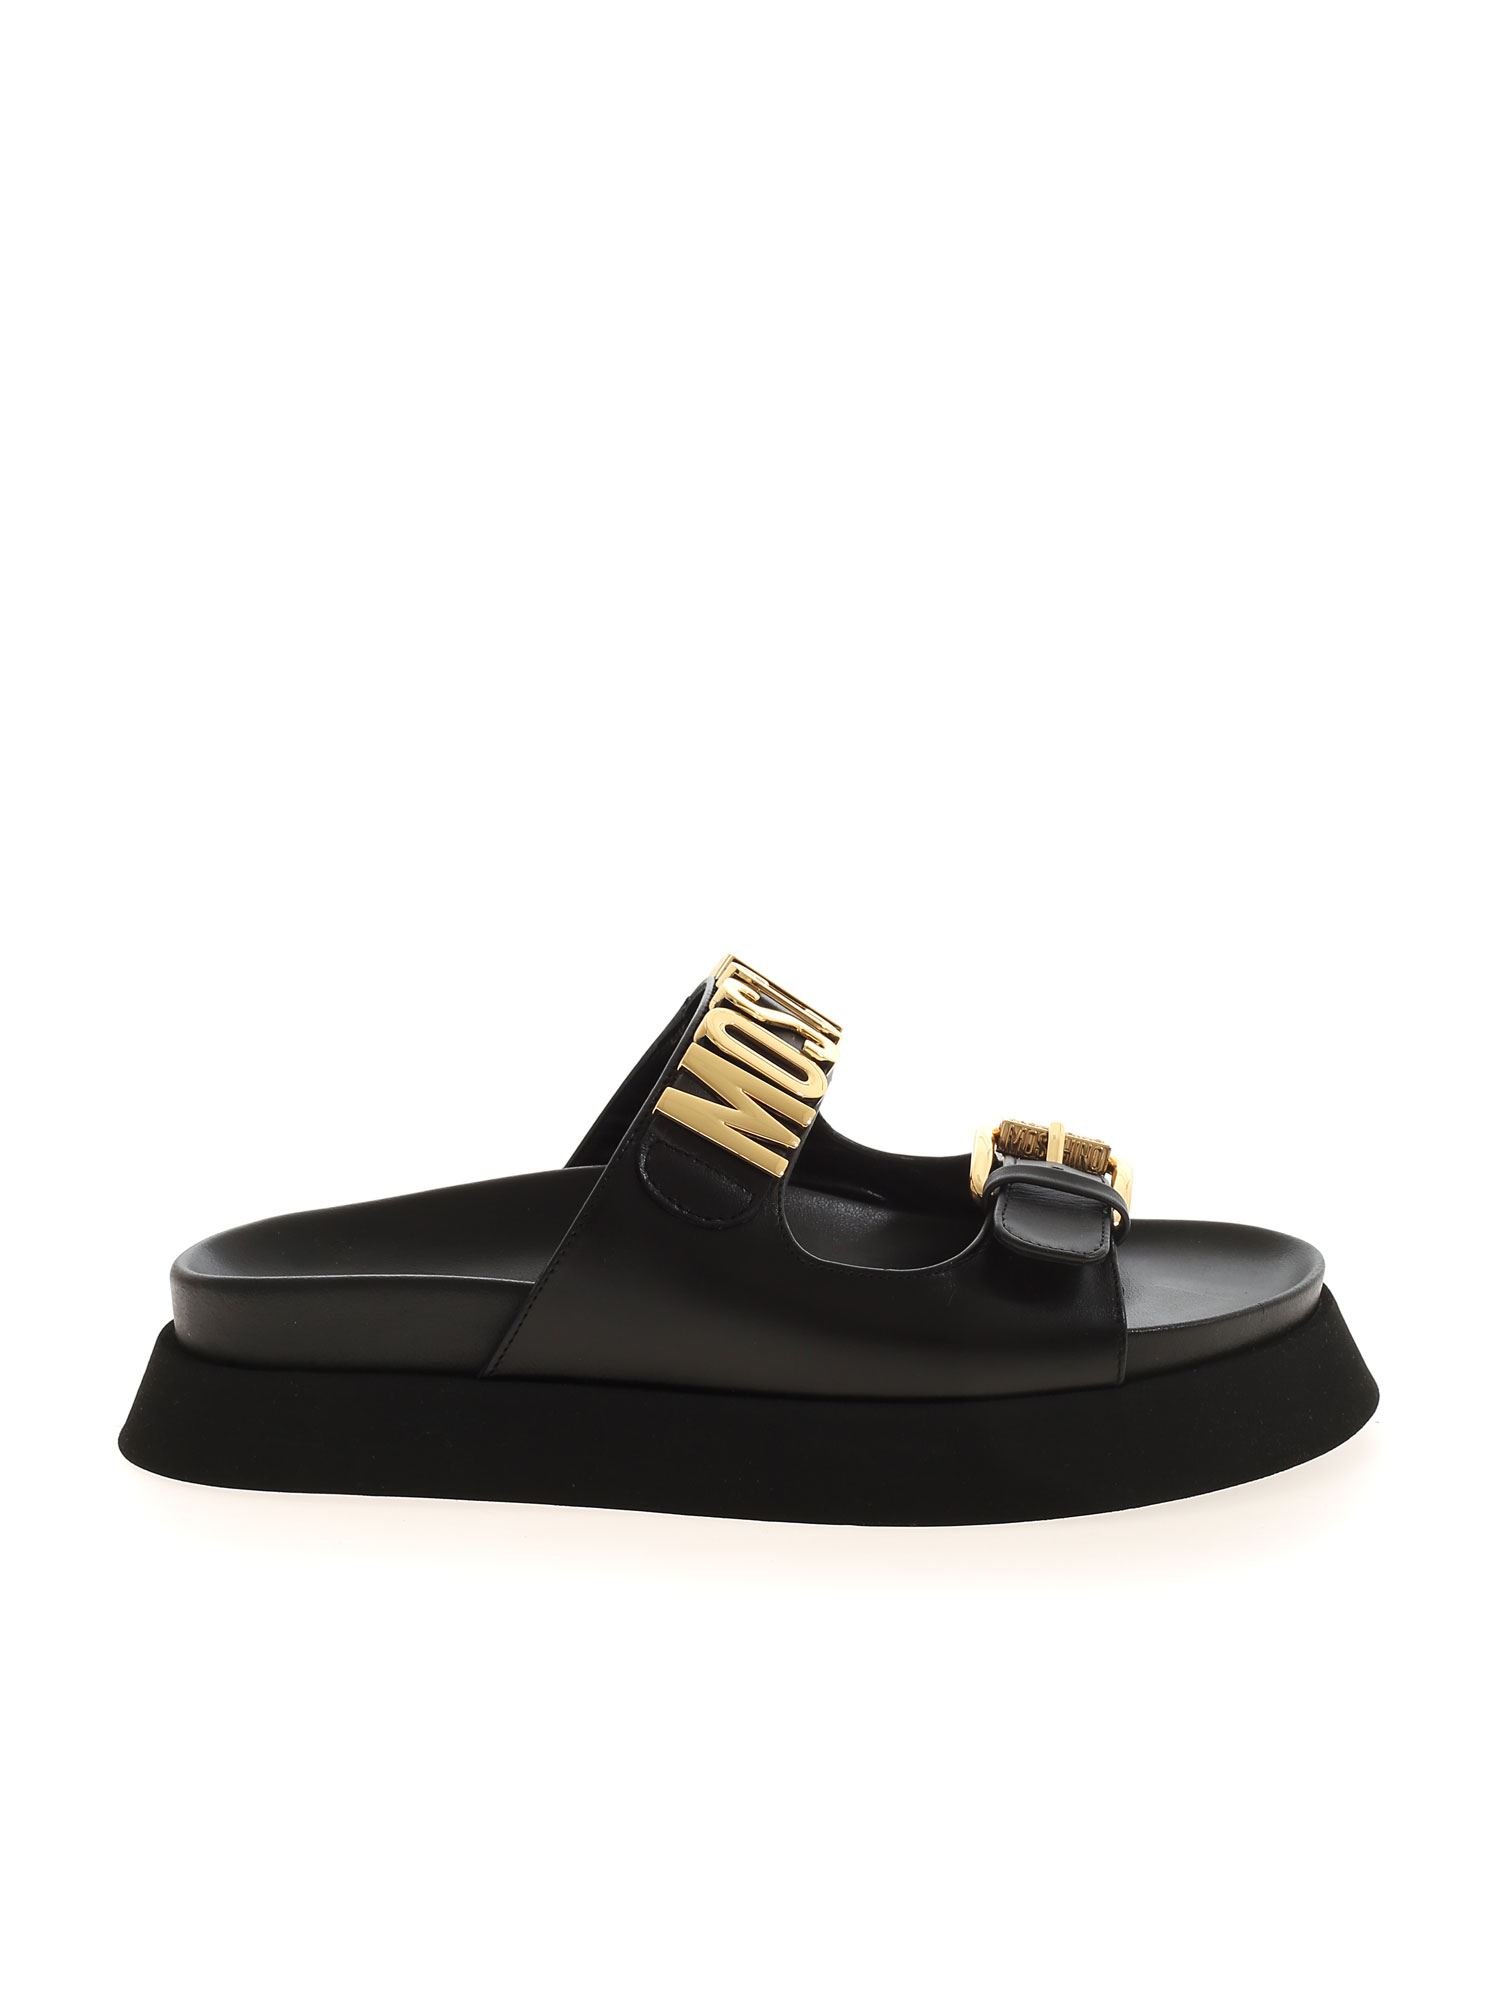 Moschino METAL LOGO SANDAL IN BLACK